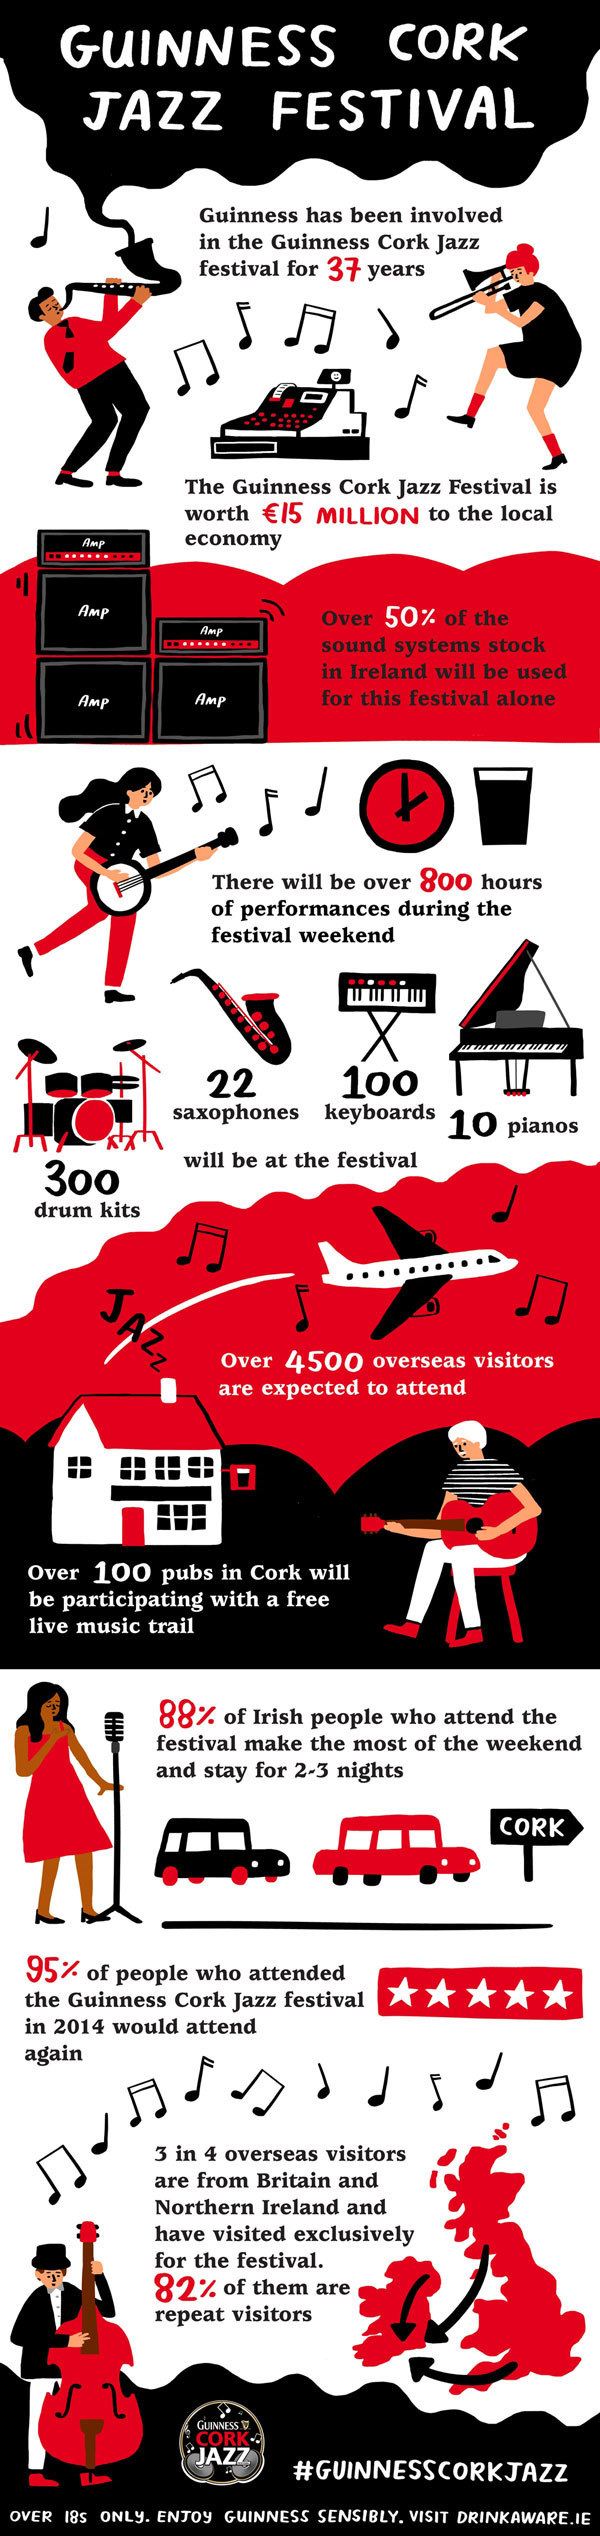 Guinness Cork Jazz Festival